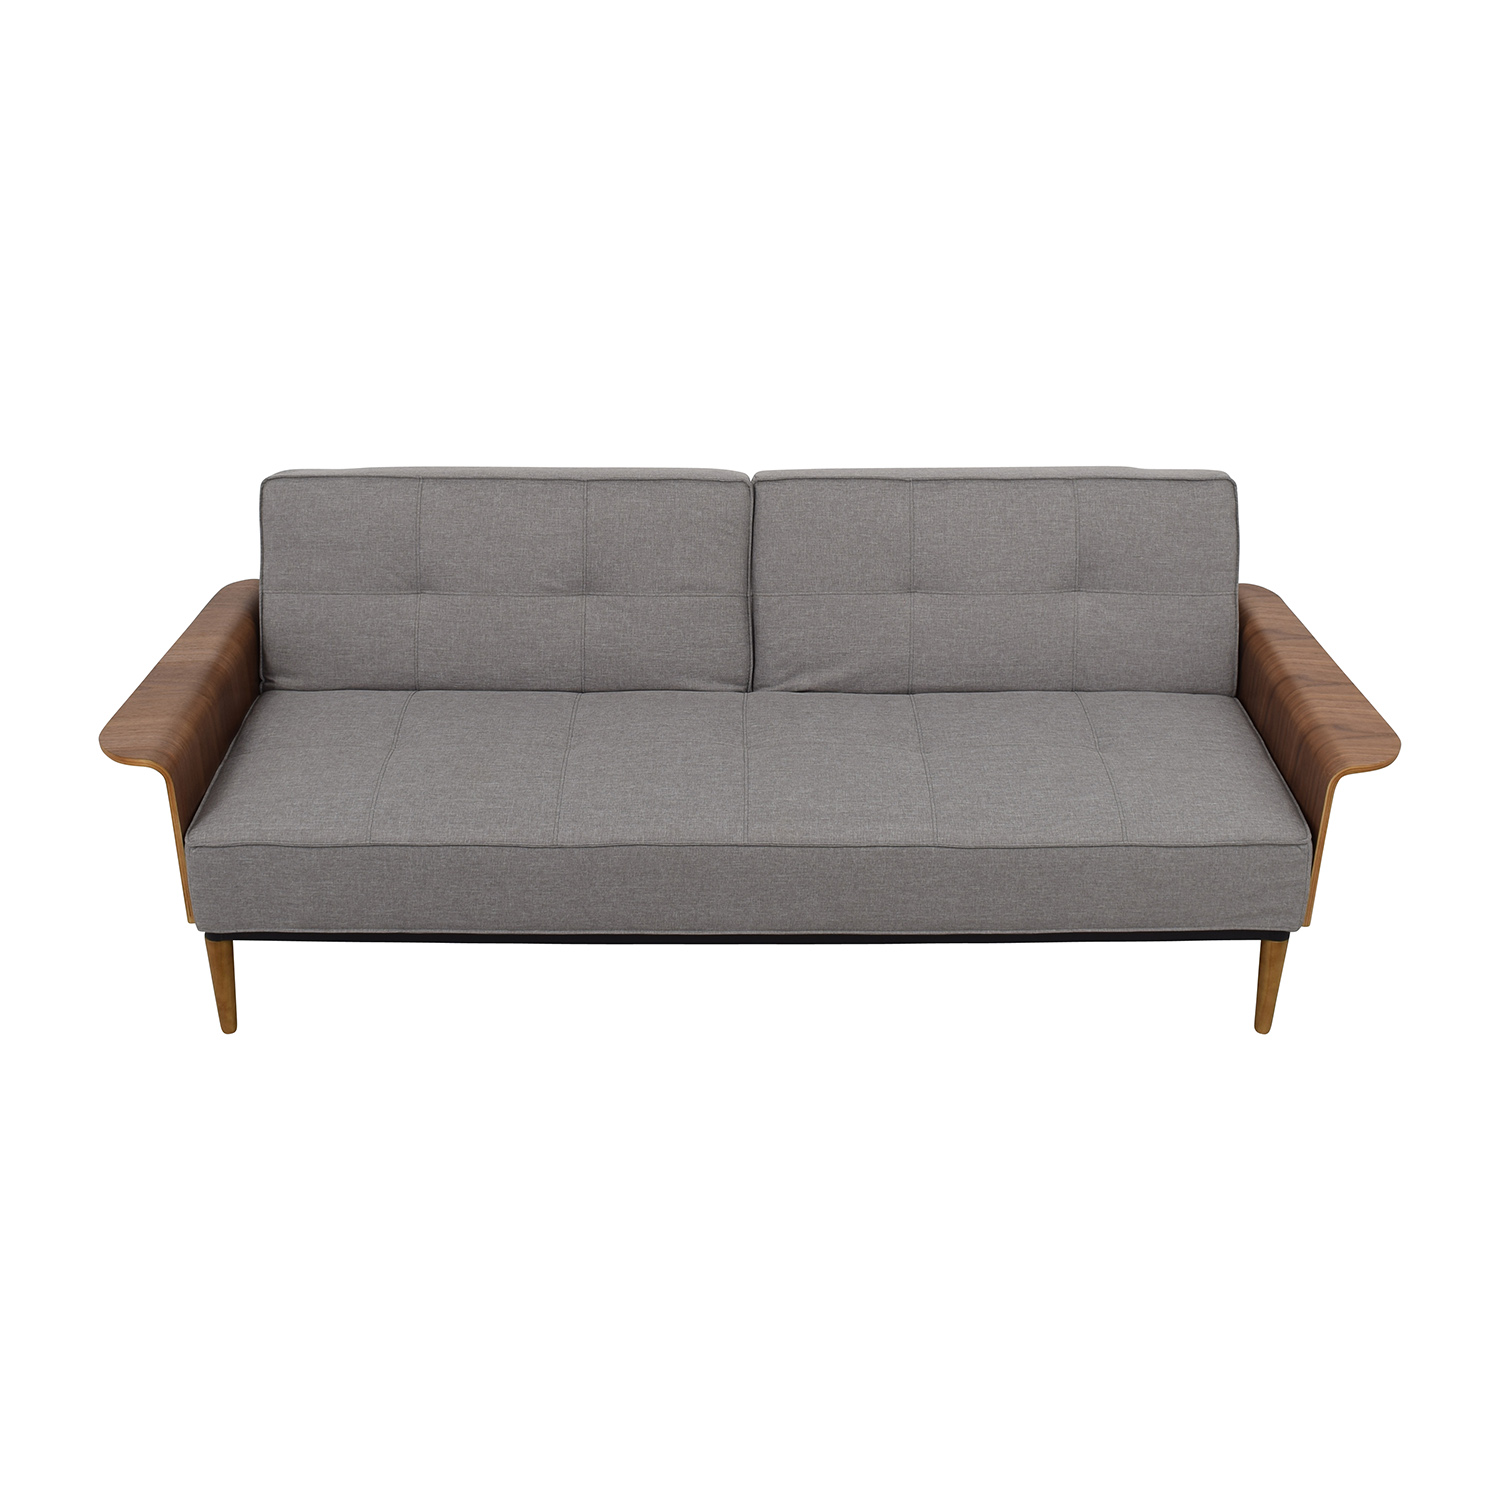 Inmod Inmod Bjorg Tufted Light Grey Sofabed coupon